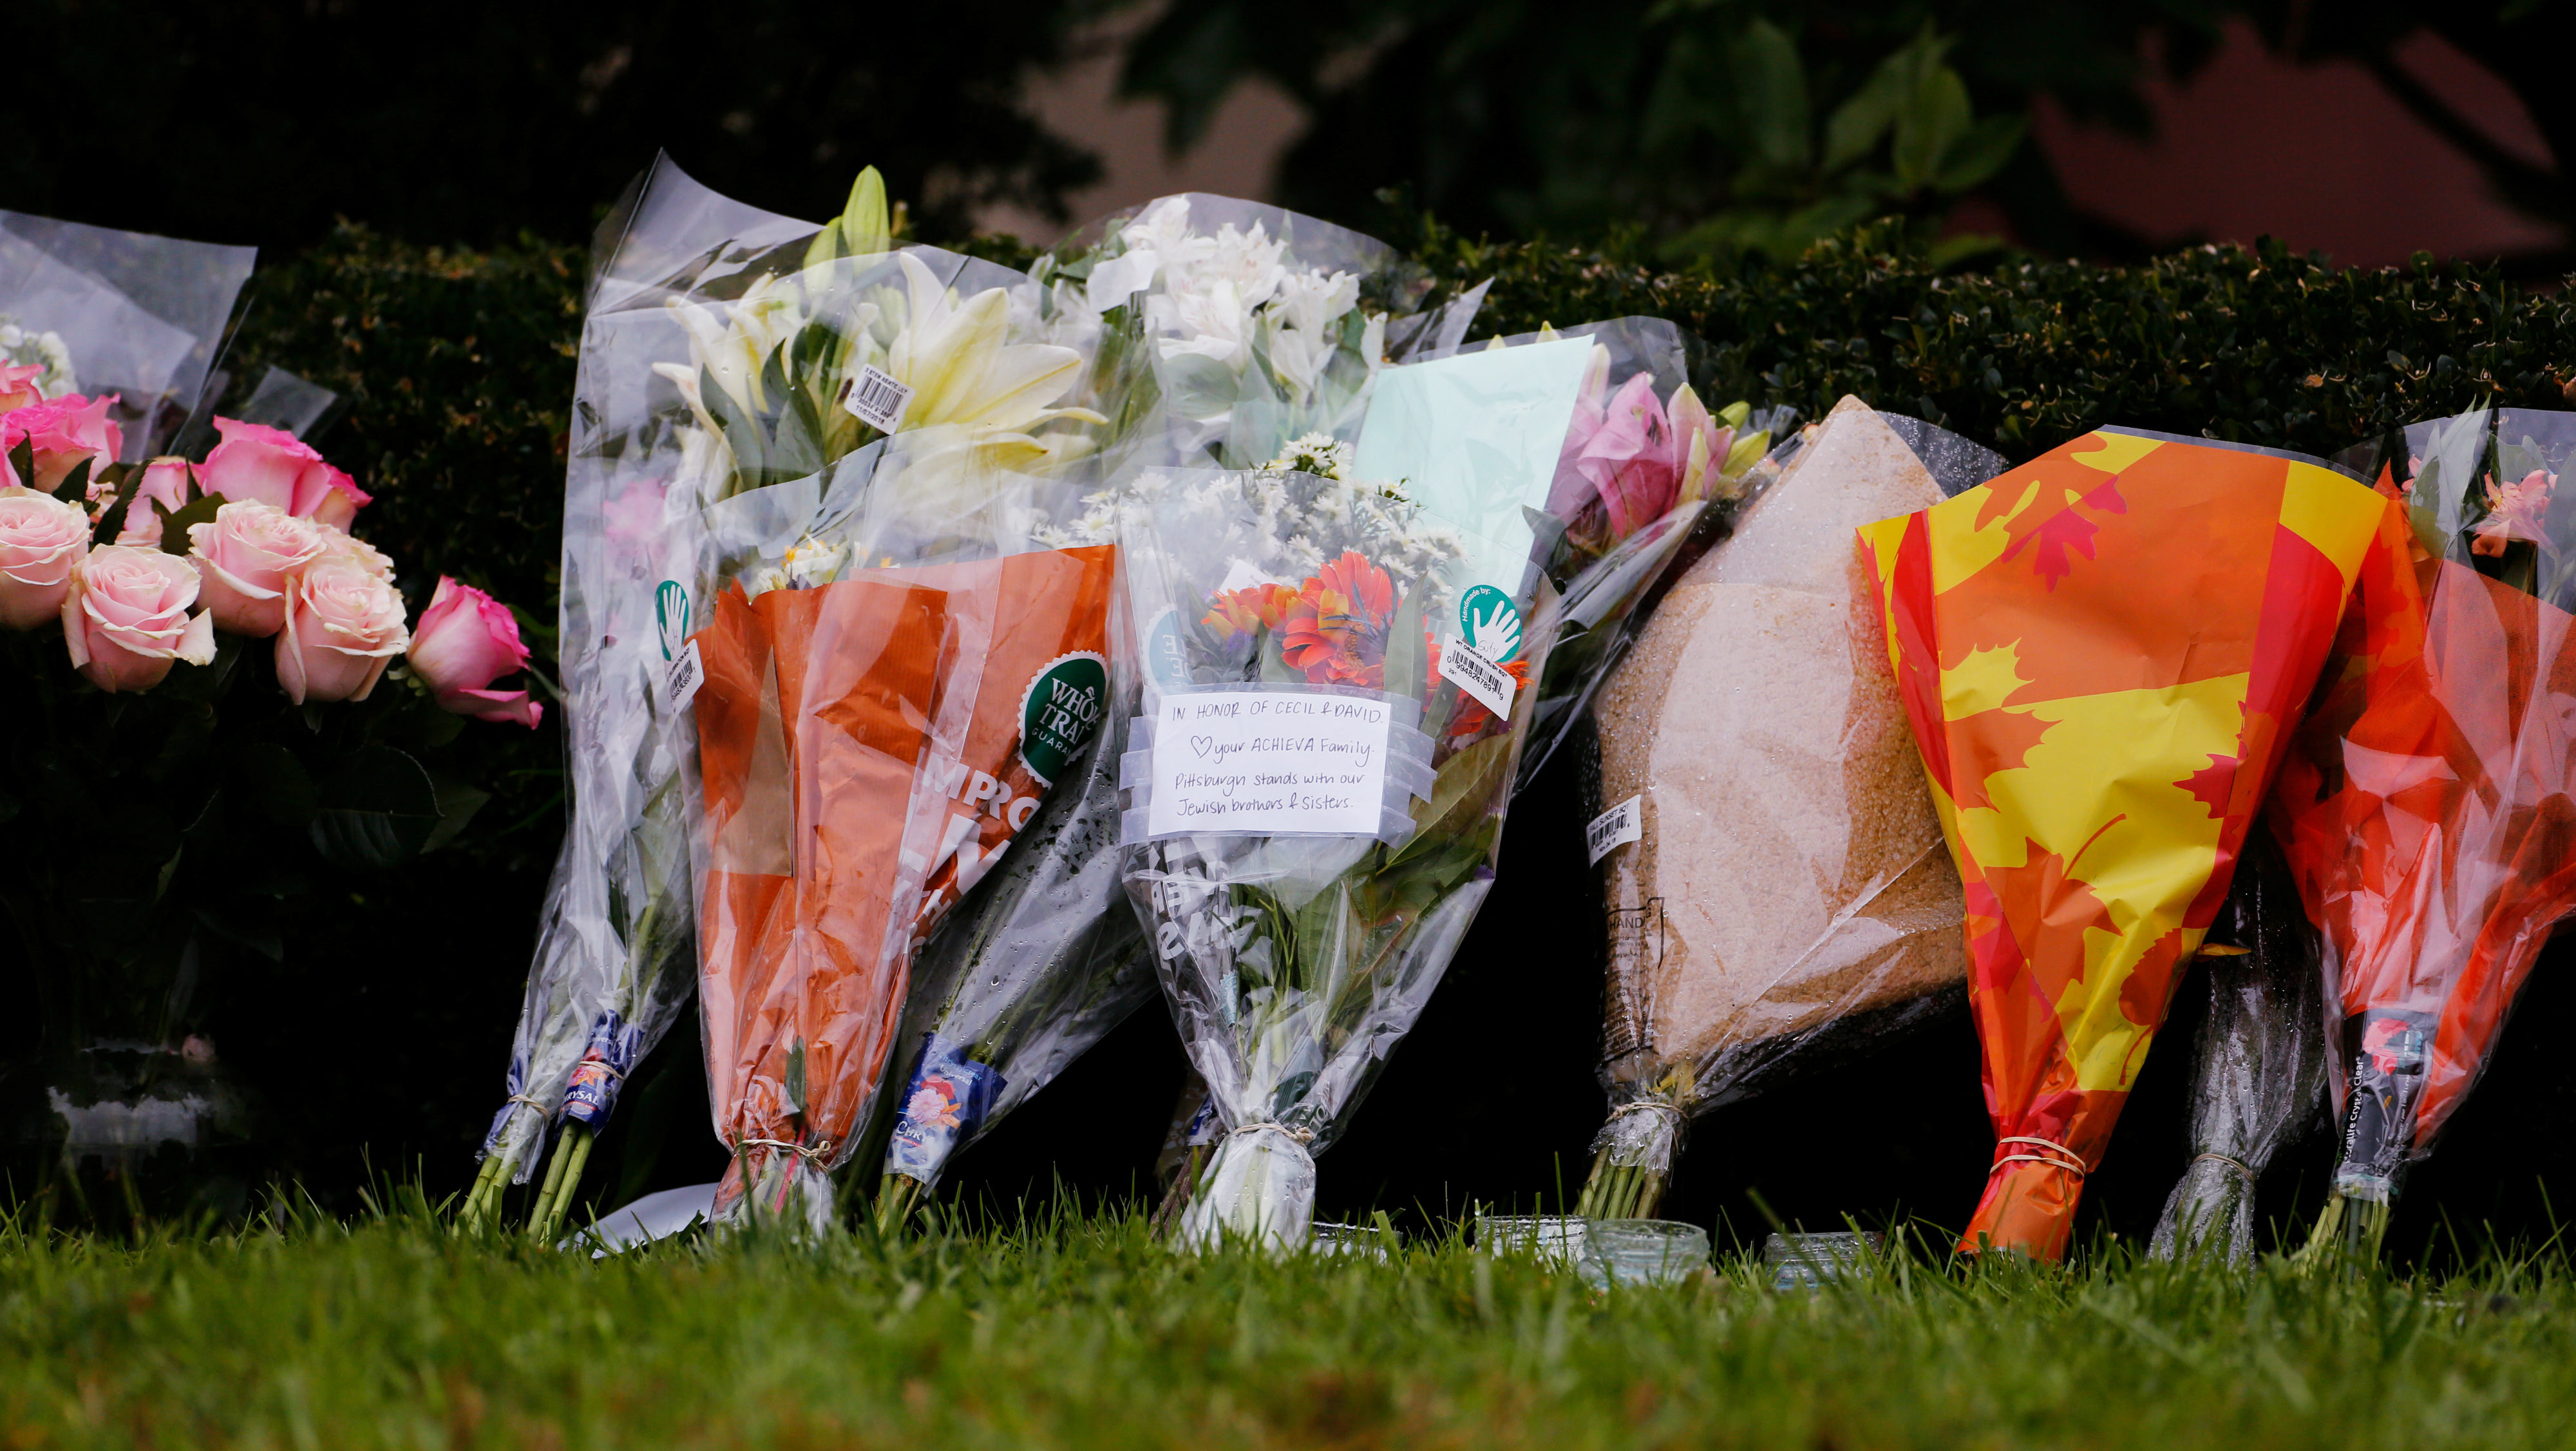 Flowers are placed an impromptu memorial at the Tree of Life synagogue following a shooting.